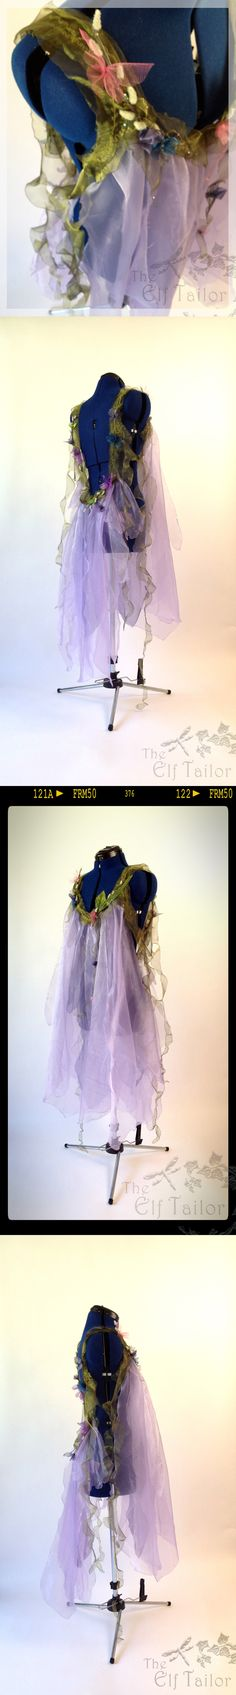 Lilac, Low-Back Fairy Dress (Close-Up) ~ Part of the Woodland Nymphs Costume Commission for New York Photographer Marque DeWinter ~ The Elf Tailor